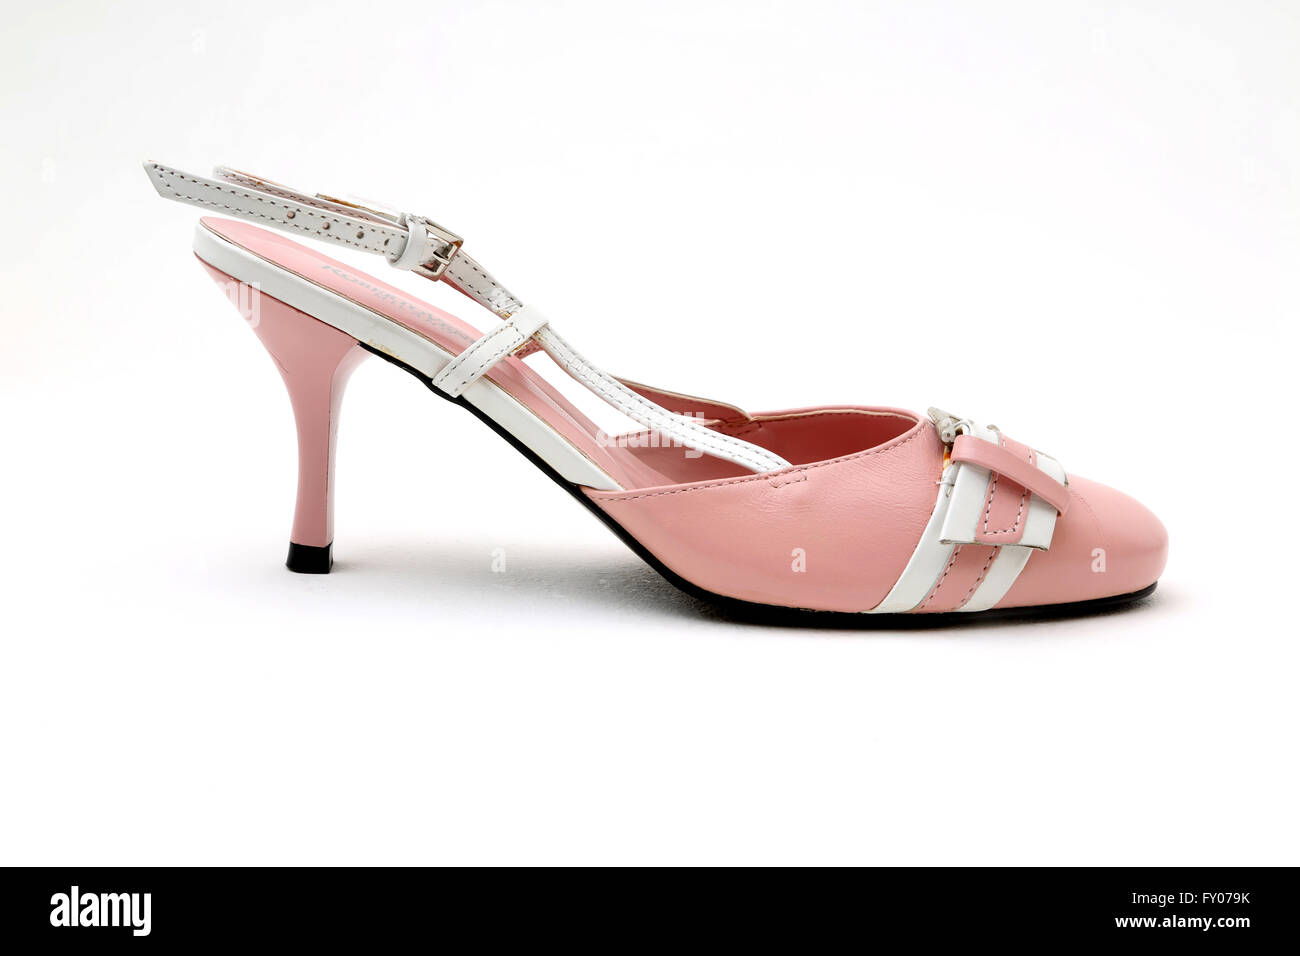 Roberto Venutt Italian Leather Pink And White Kitten Heel Shoe With Buckle - Stock Image